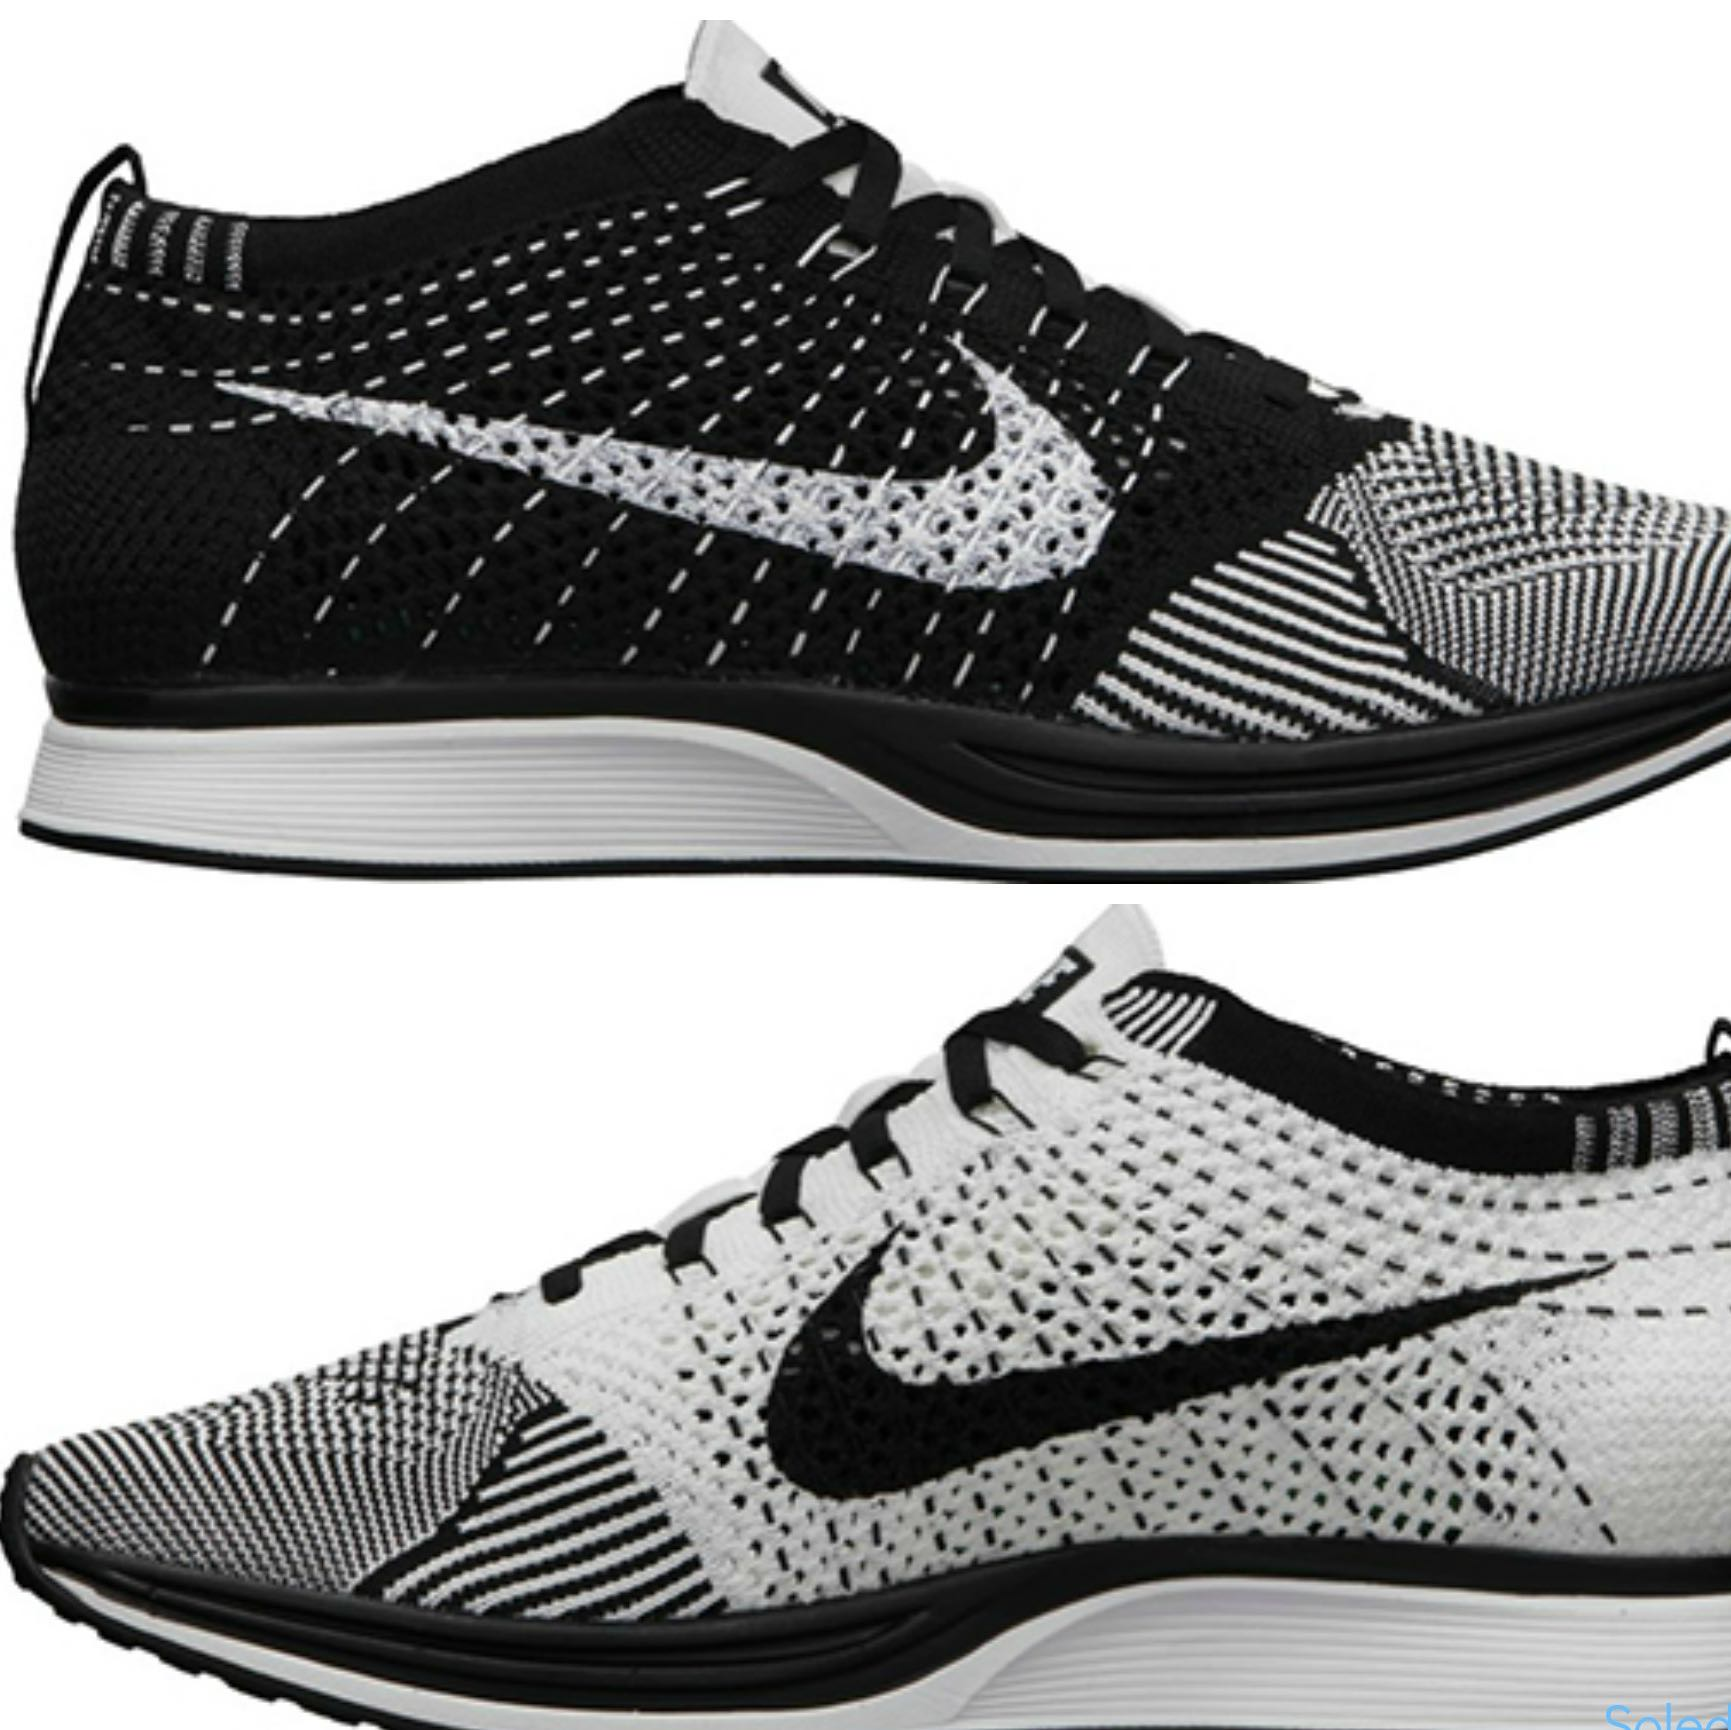 wo kann ich die nike flyknit racer in grau noch kaufen schuhe shopping. Black Bedroom Furniture Sets. Home Design Ideas